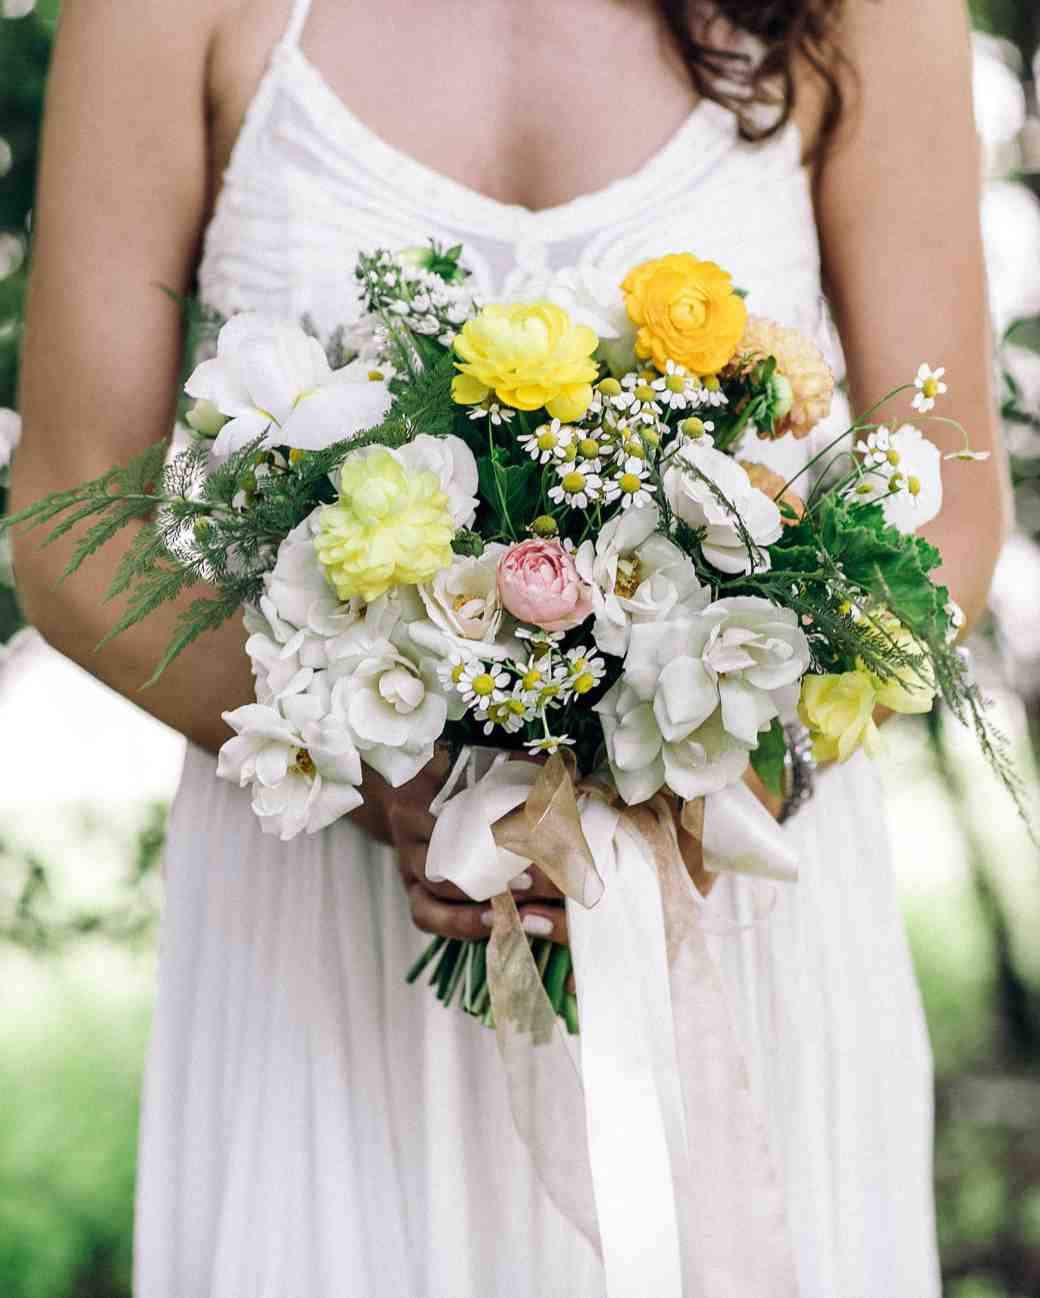 Ranunculus Chamomile And Roses Wedding Bouquet